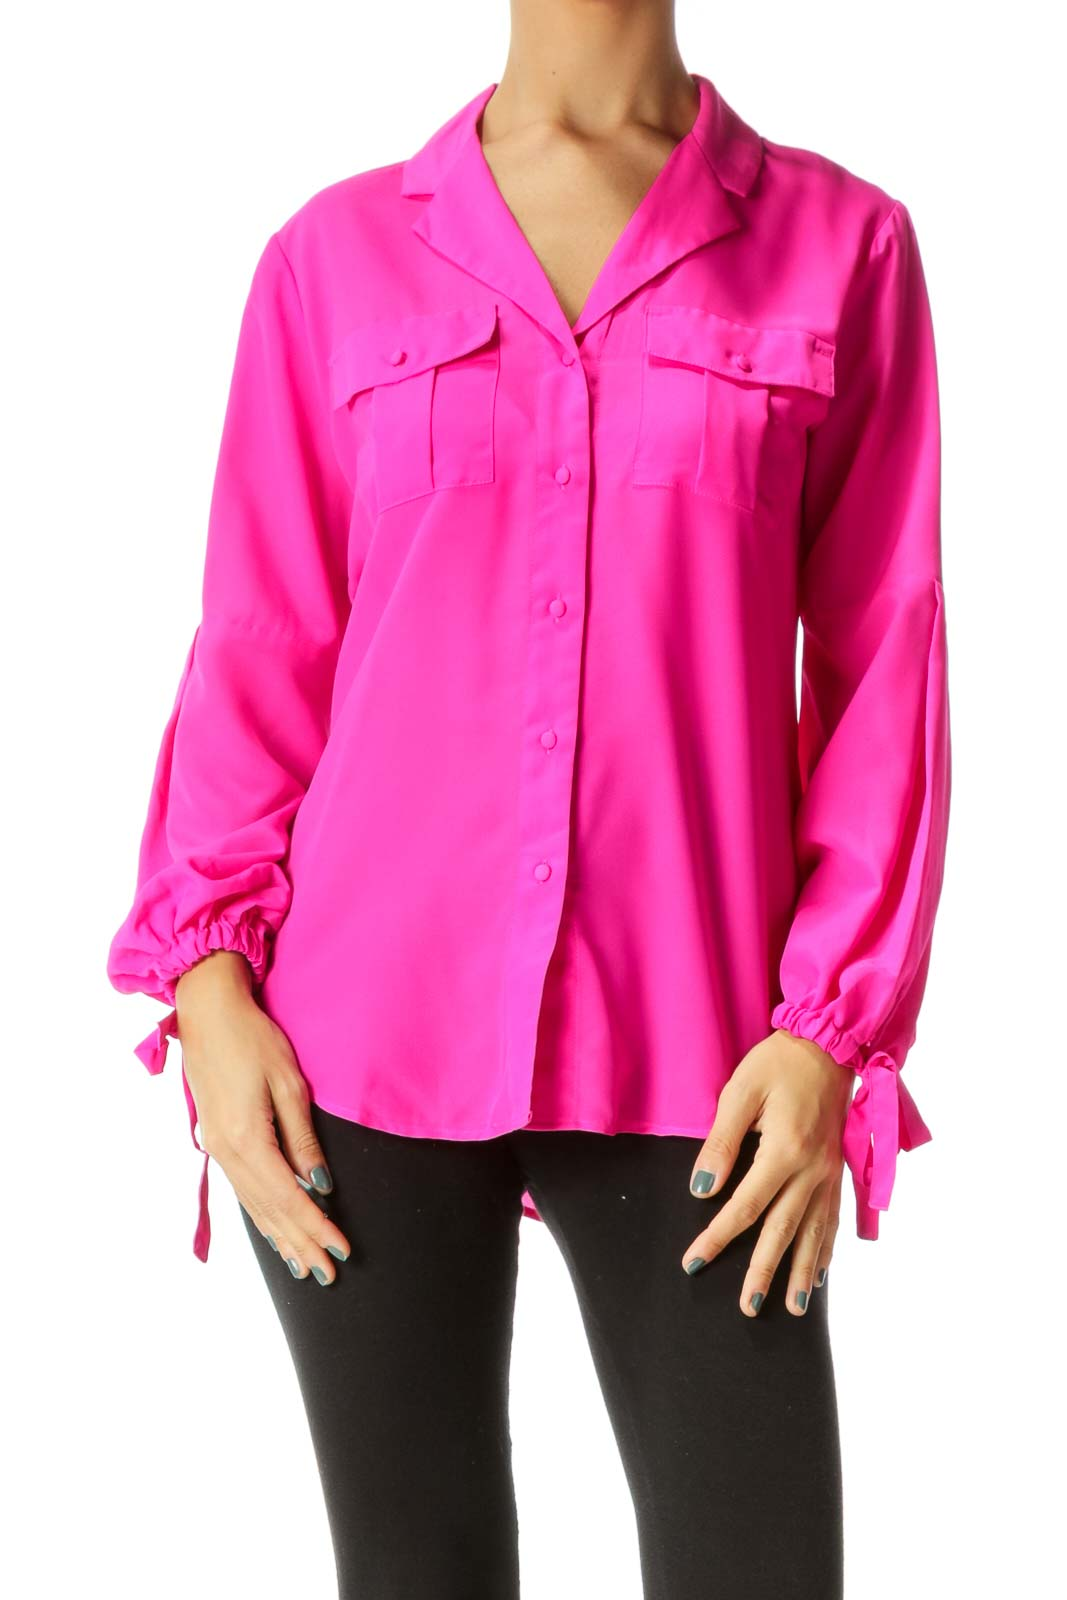 Hot Pink V-Neck Sleeve Bow Details Shirt